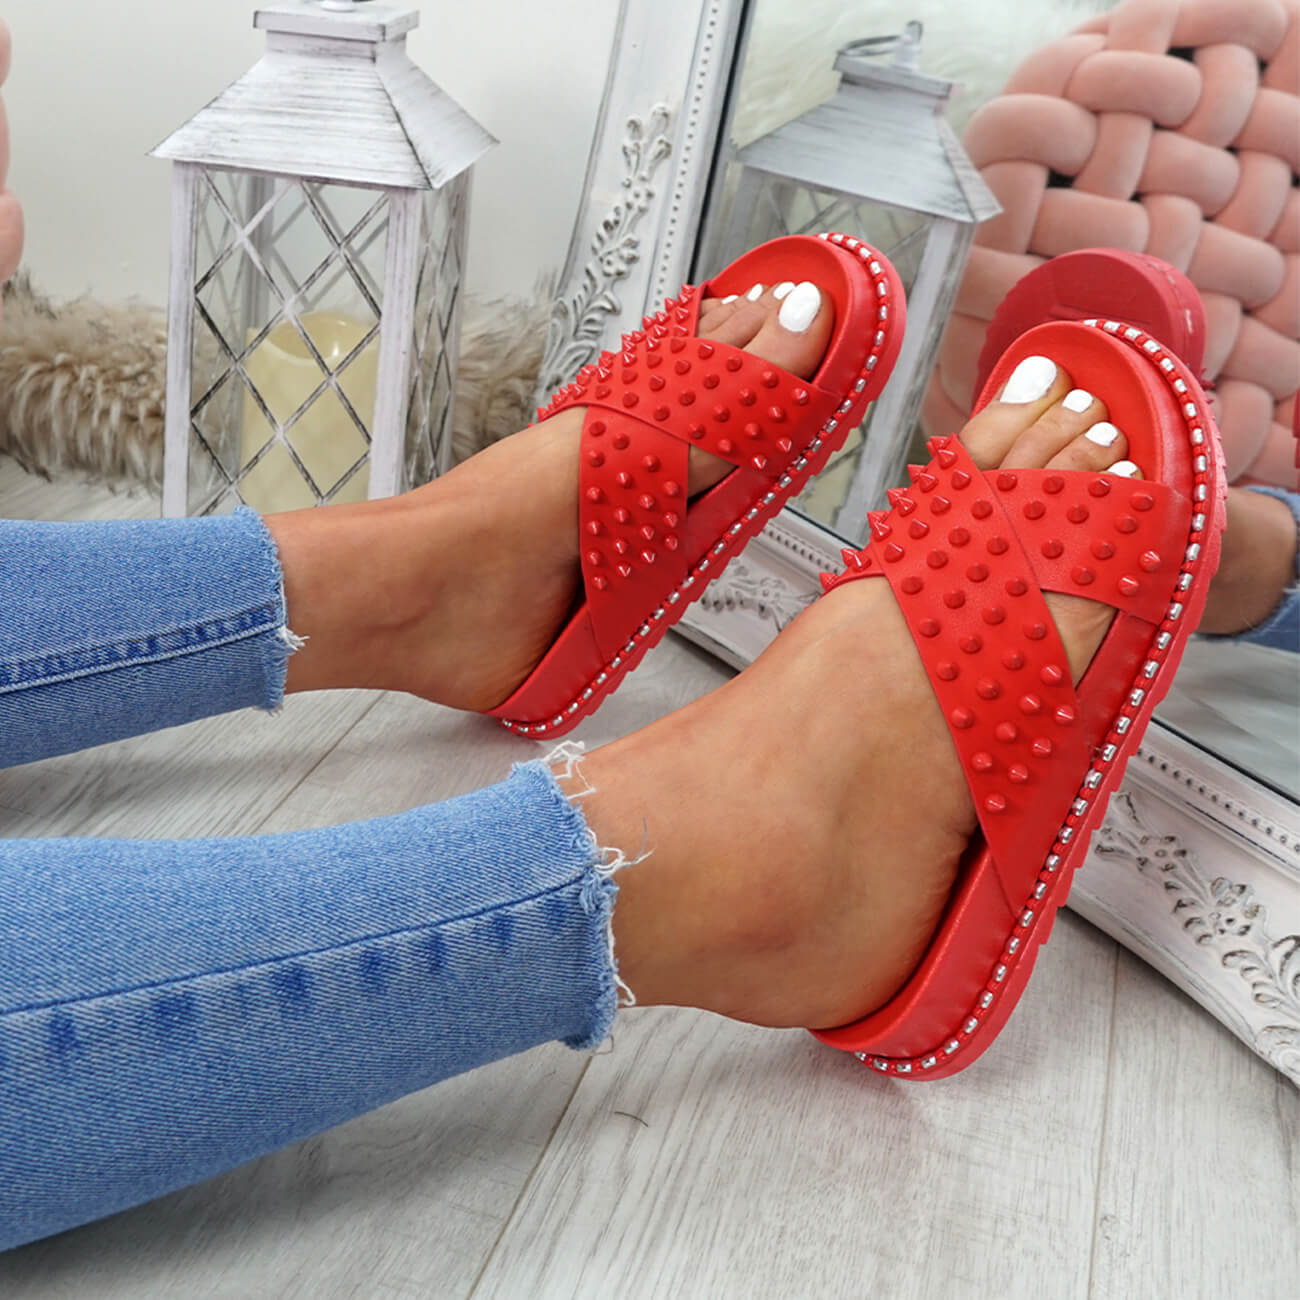 WOMENS-LADIES-SPIKE-STUDS-PEEP-TOE-FLAT-SANDALS-FLIP-FLOPS-SLIP-ON-SHOES-SIZE thumbnail 19